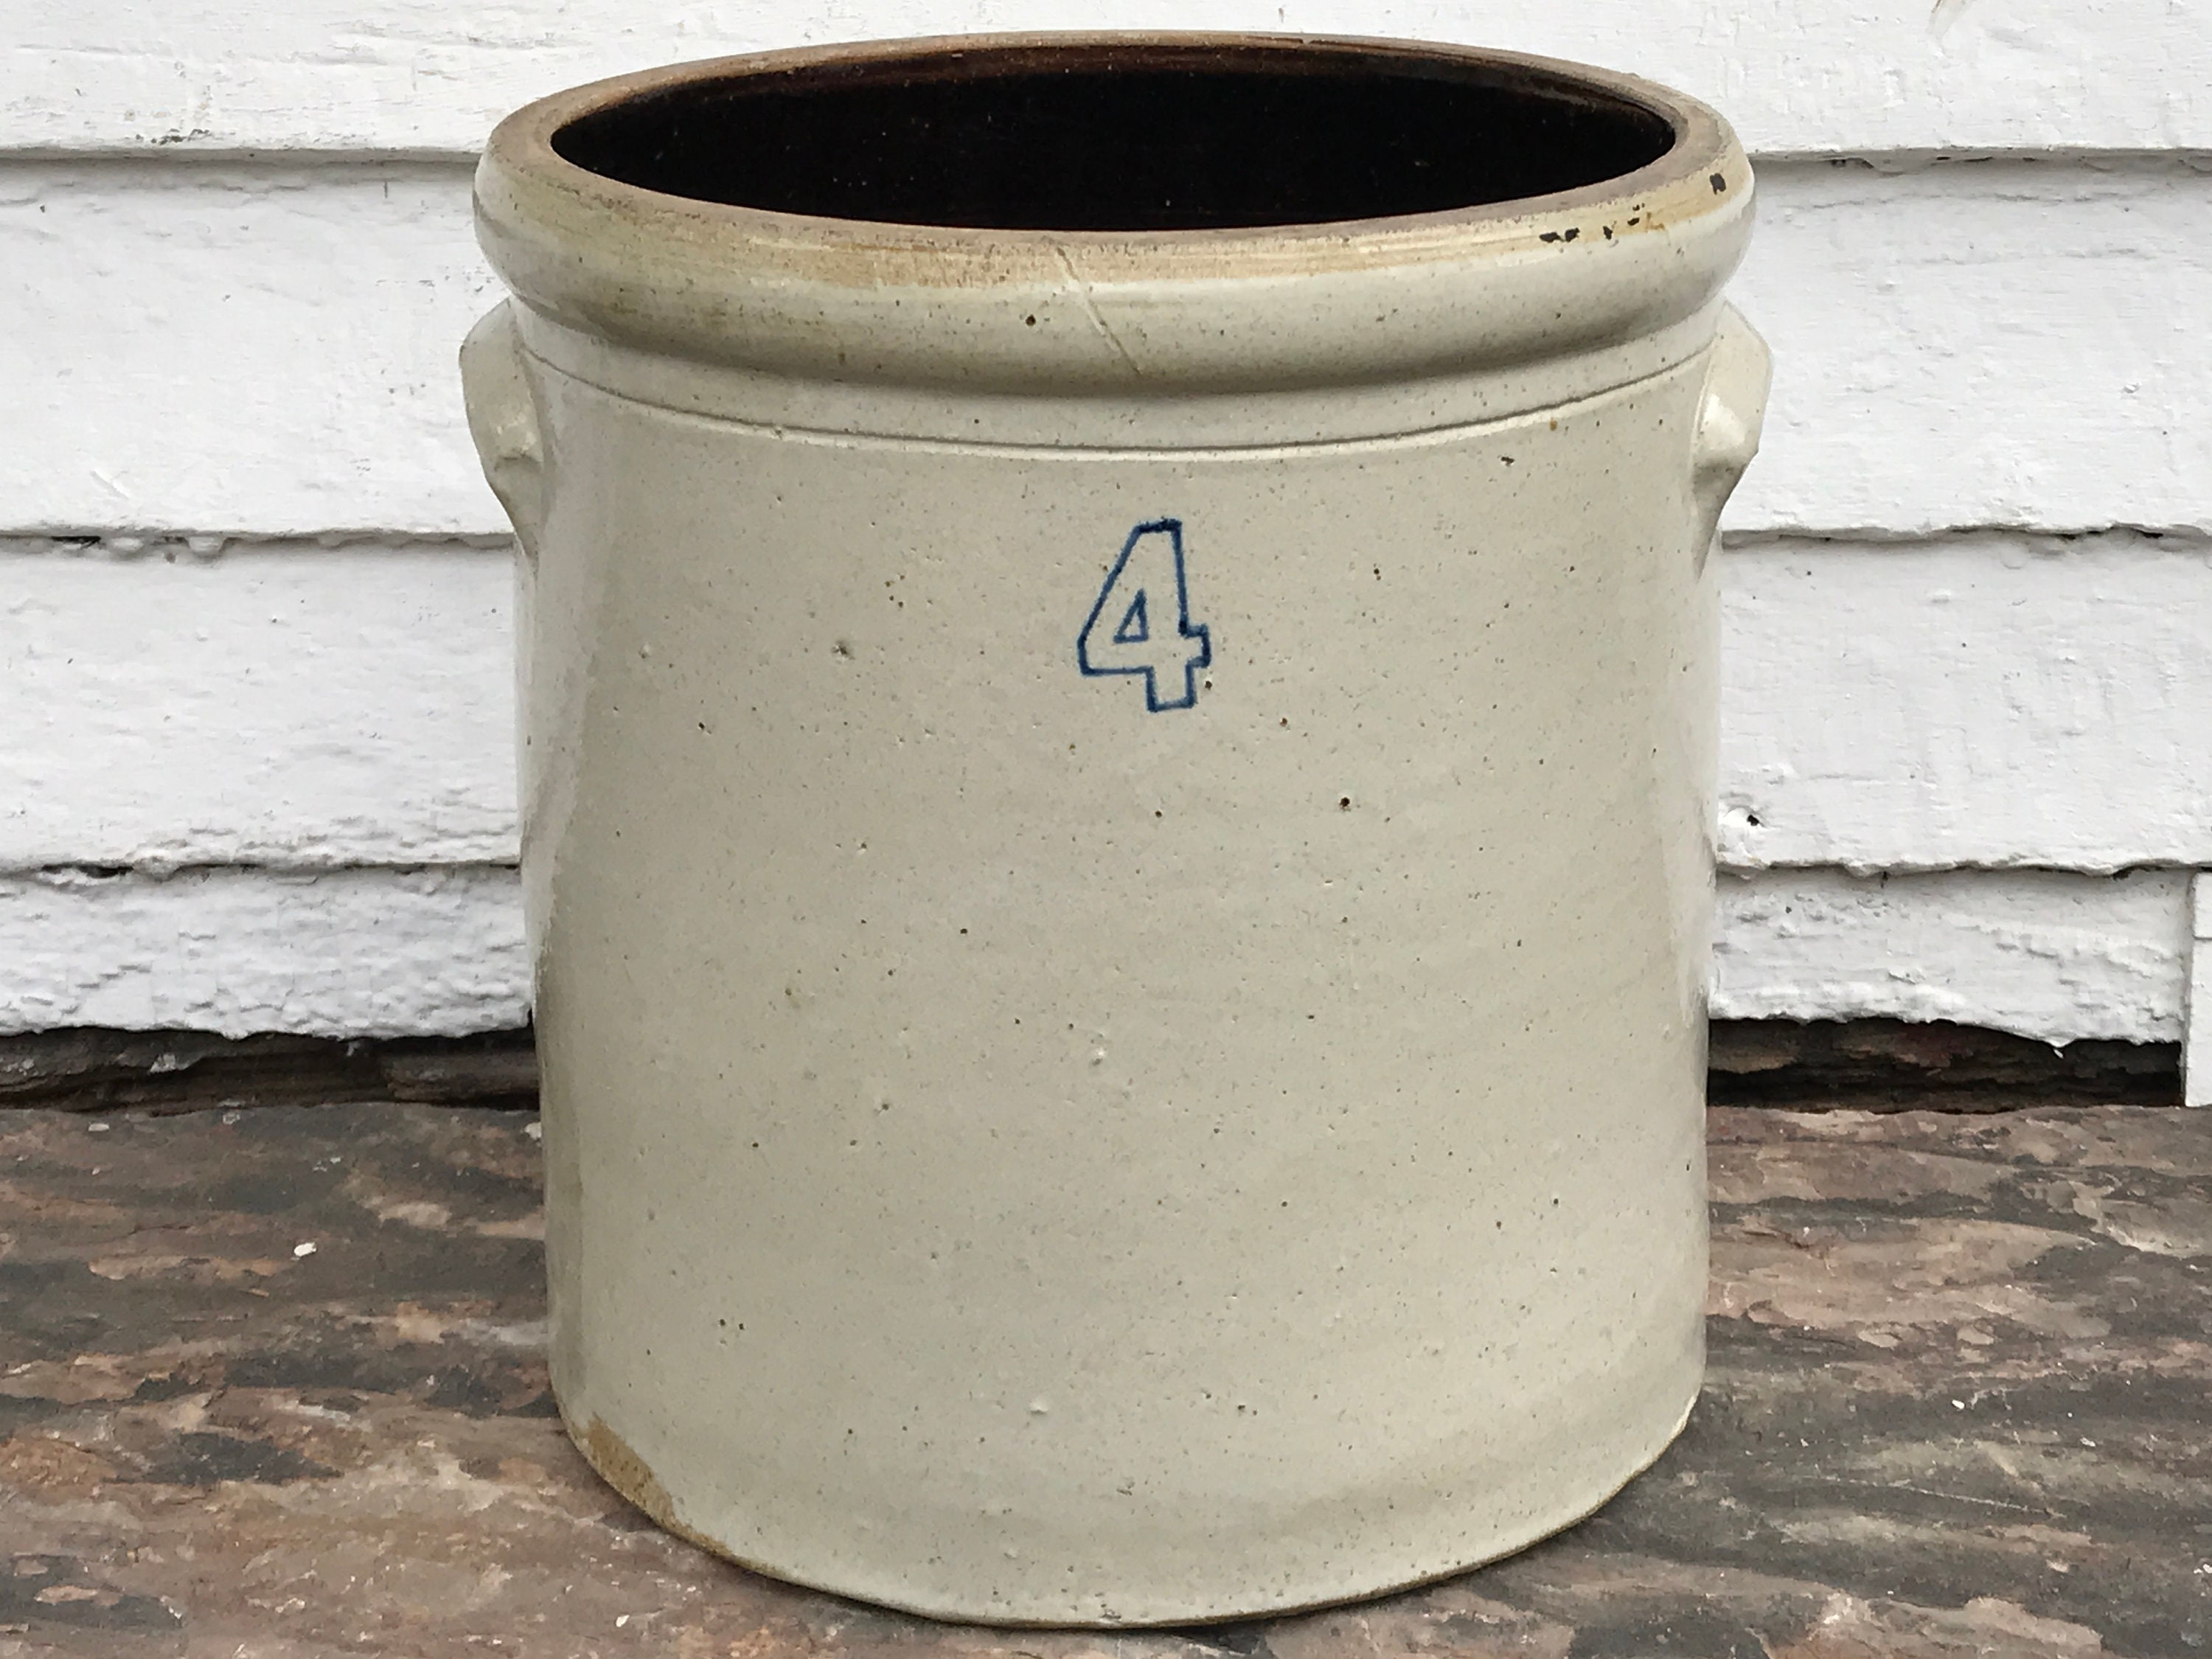 antique crock 4 gallon crock with handles pickle crock